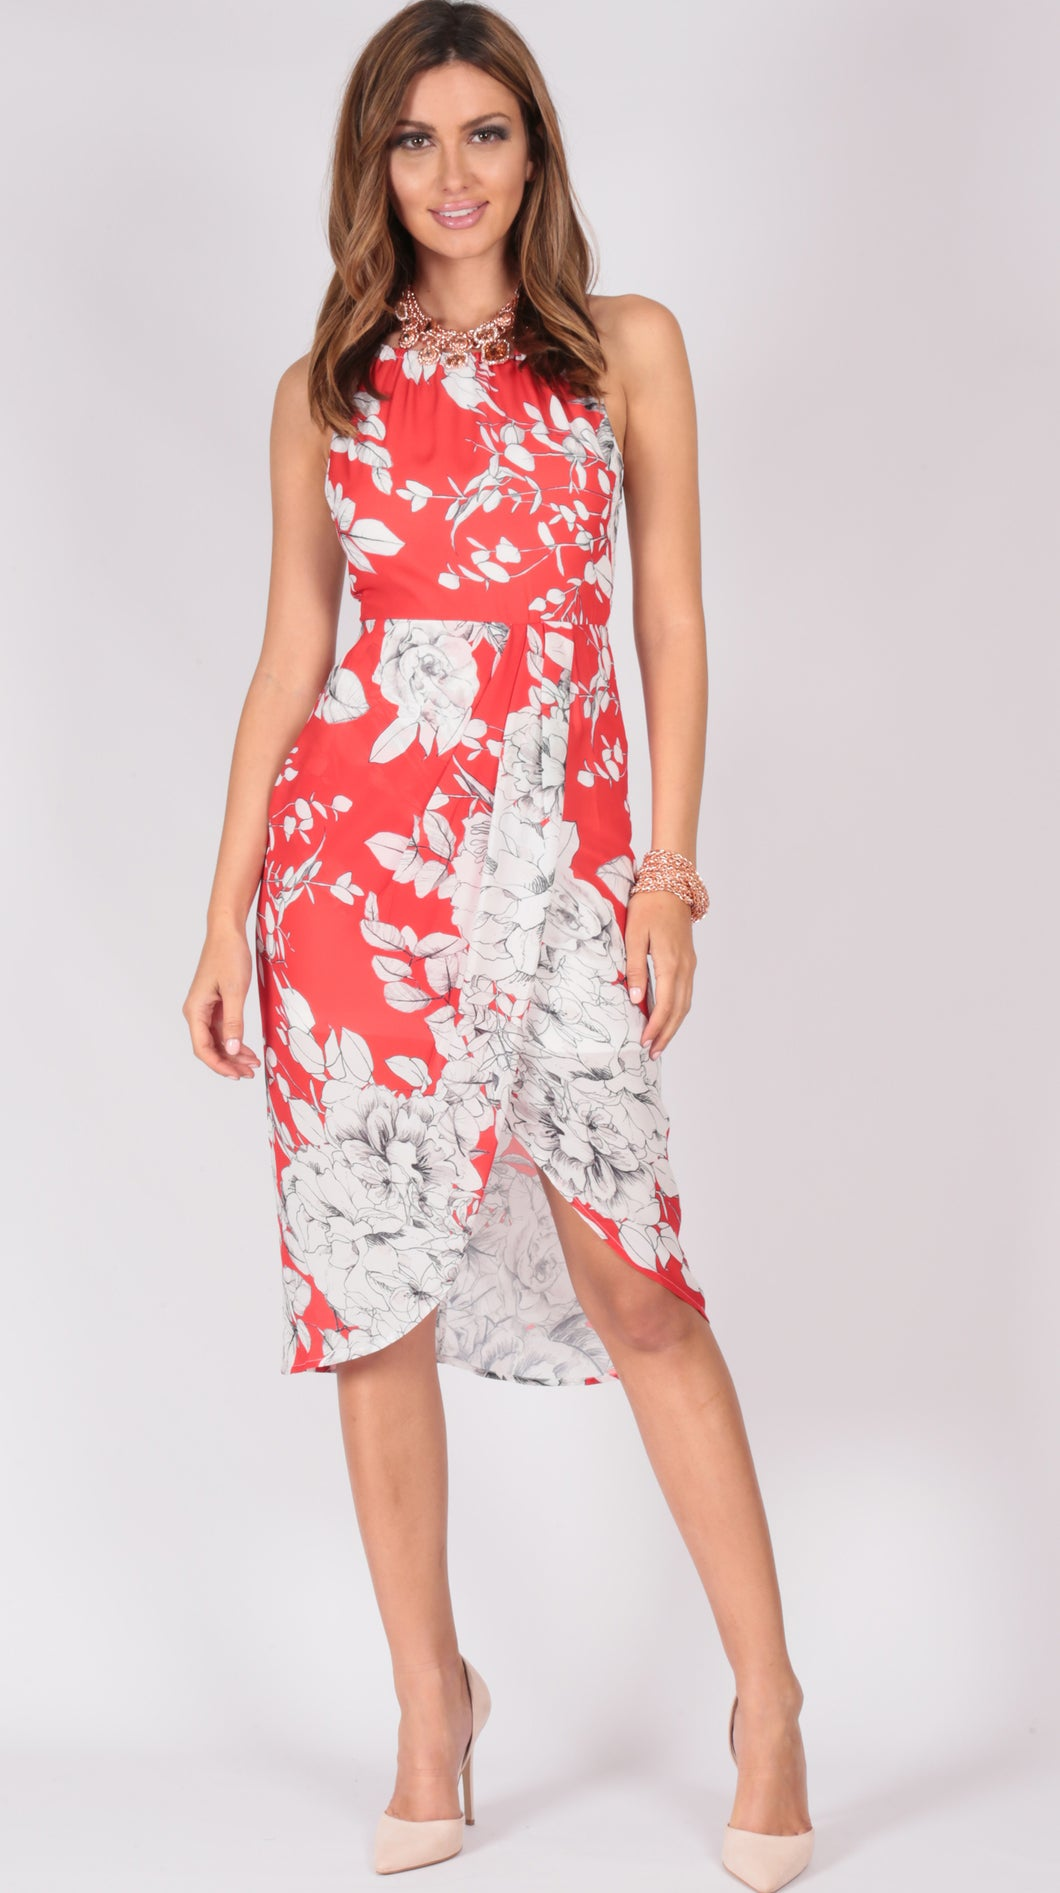 LV627-8SS Halter Red Print Dress (Pack)